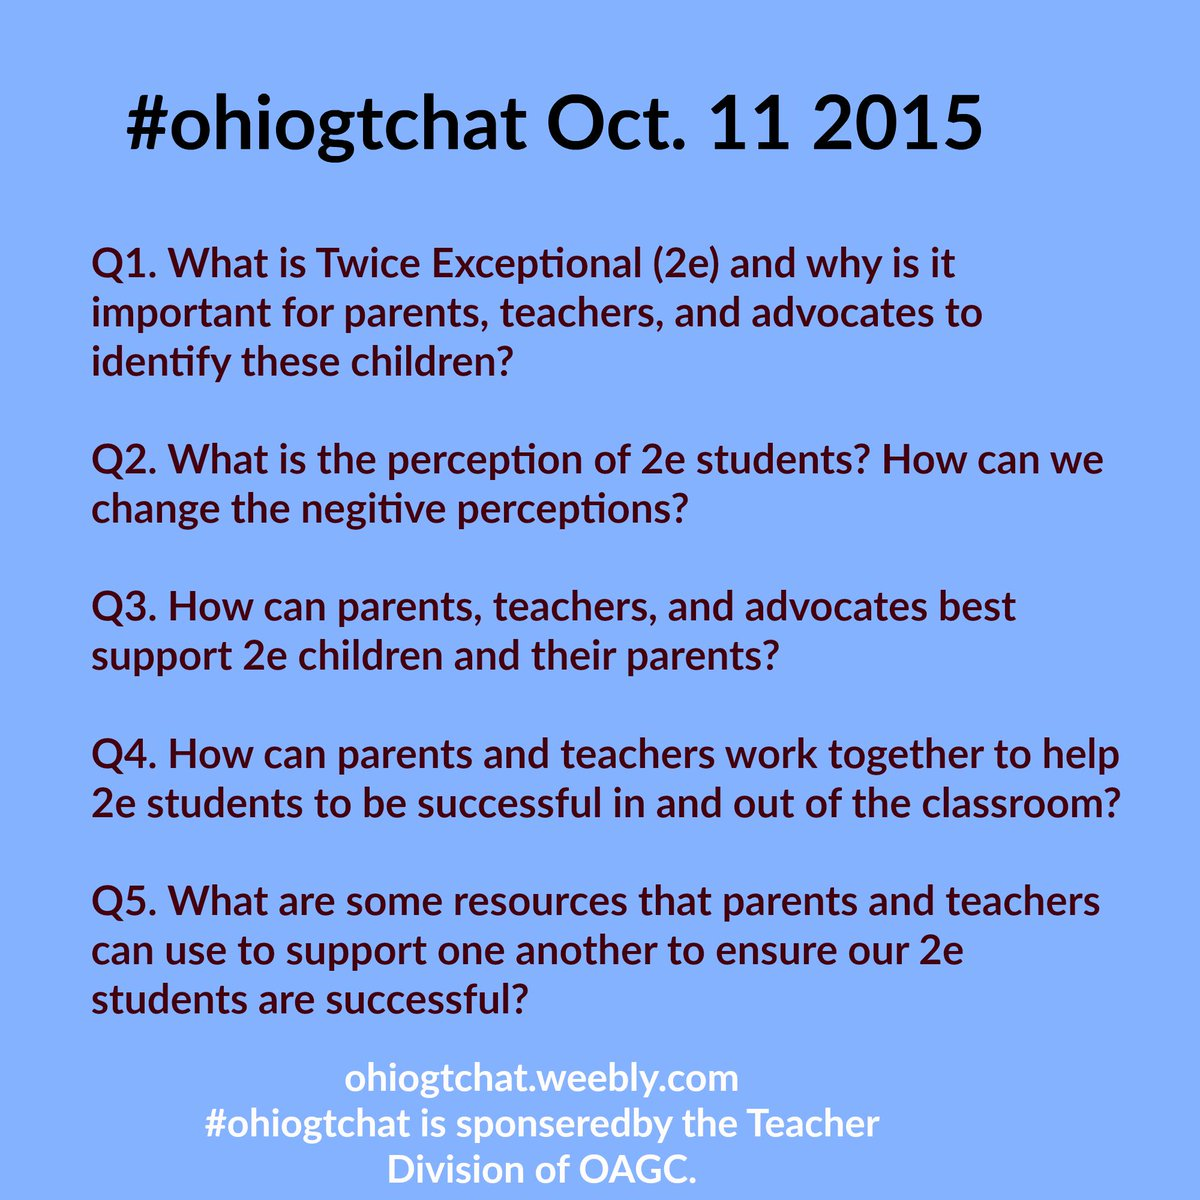 Thumbnail for #ohiogtchat Oct 11 2015 The Joys and Challenges of Twice Exceptional Students Exploring the joys and challenges of...